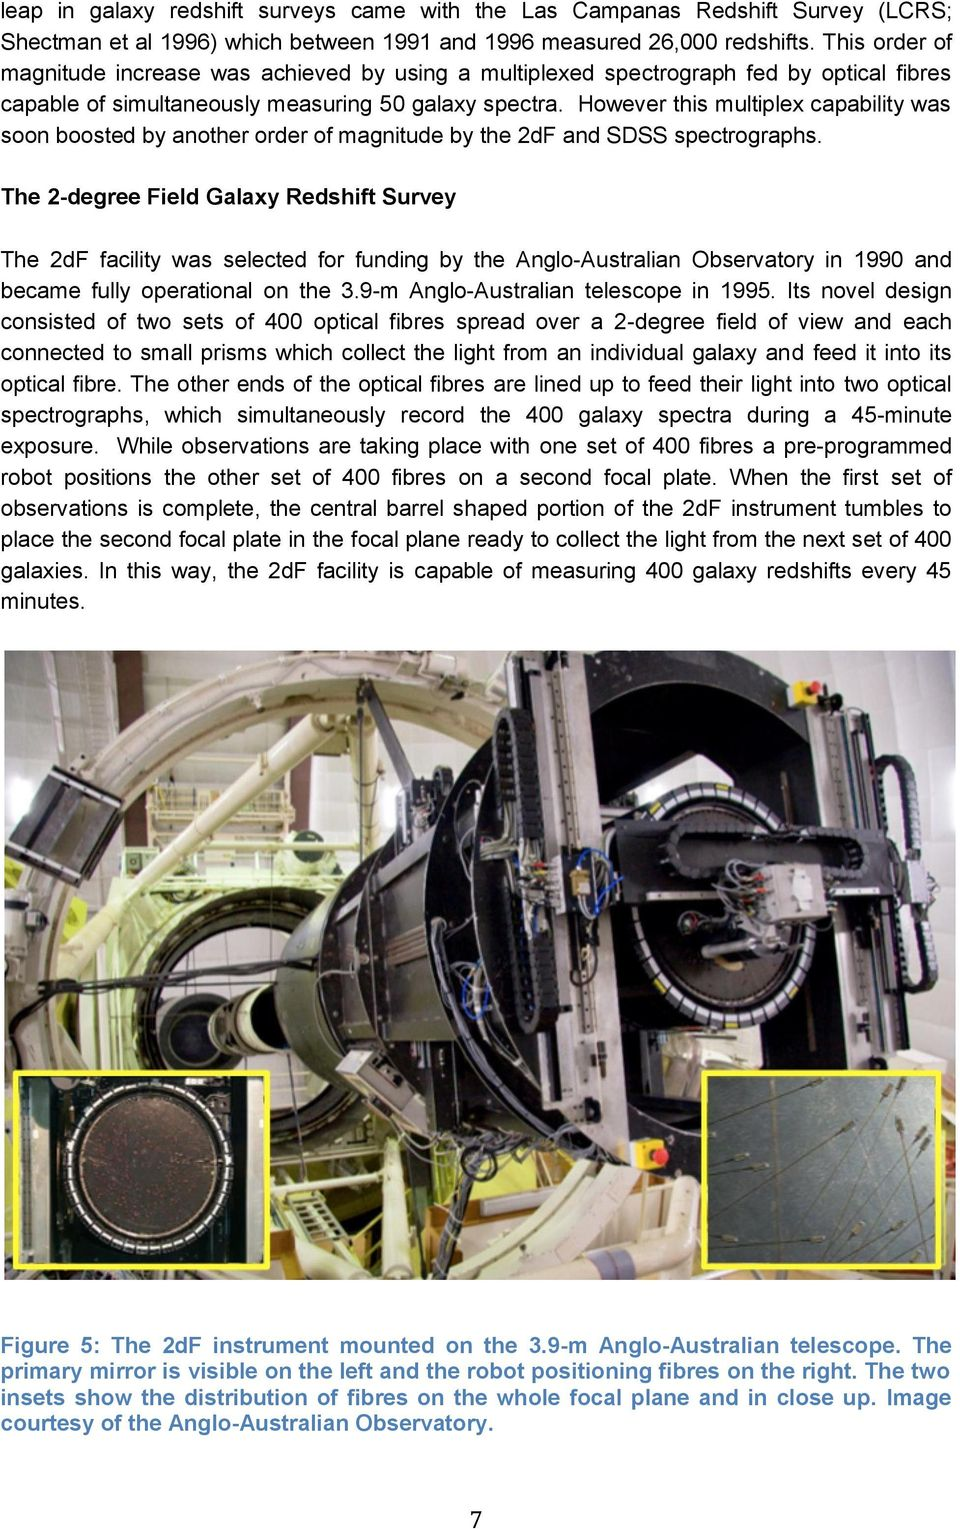 However this multiplex capability was soon boosted by another order of magnitude by the 2dF and SDSS spectrographs.